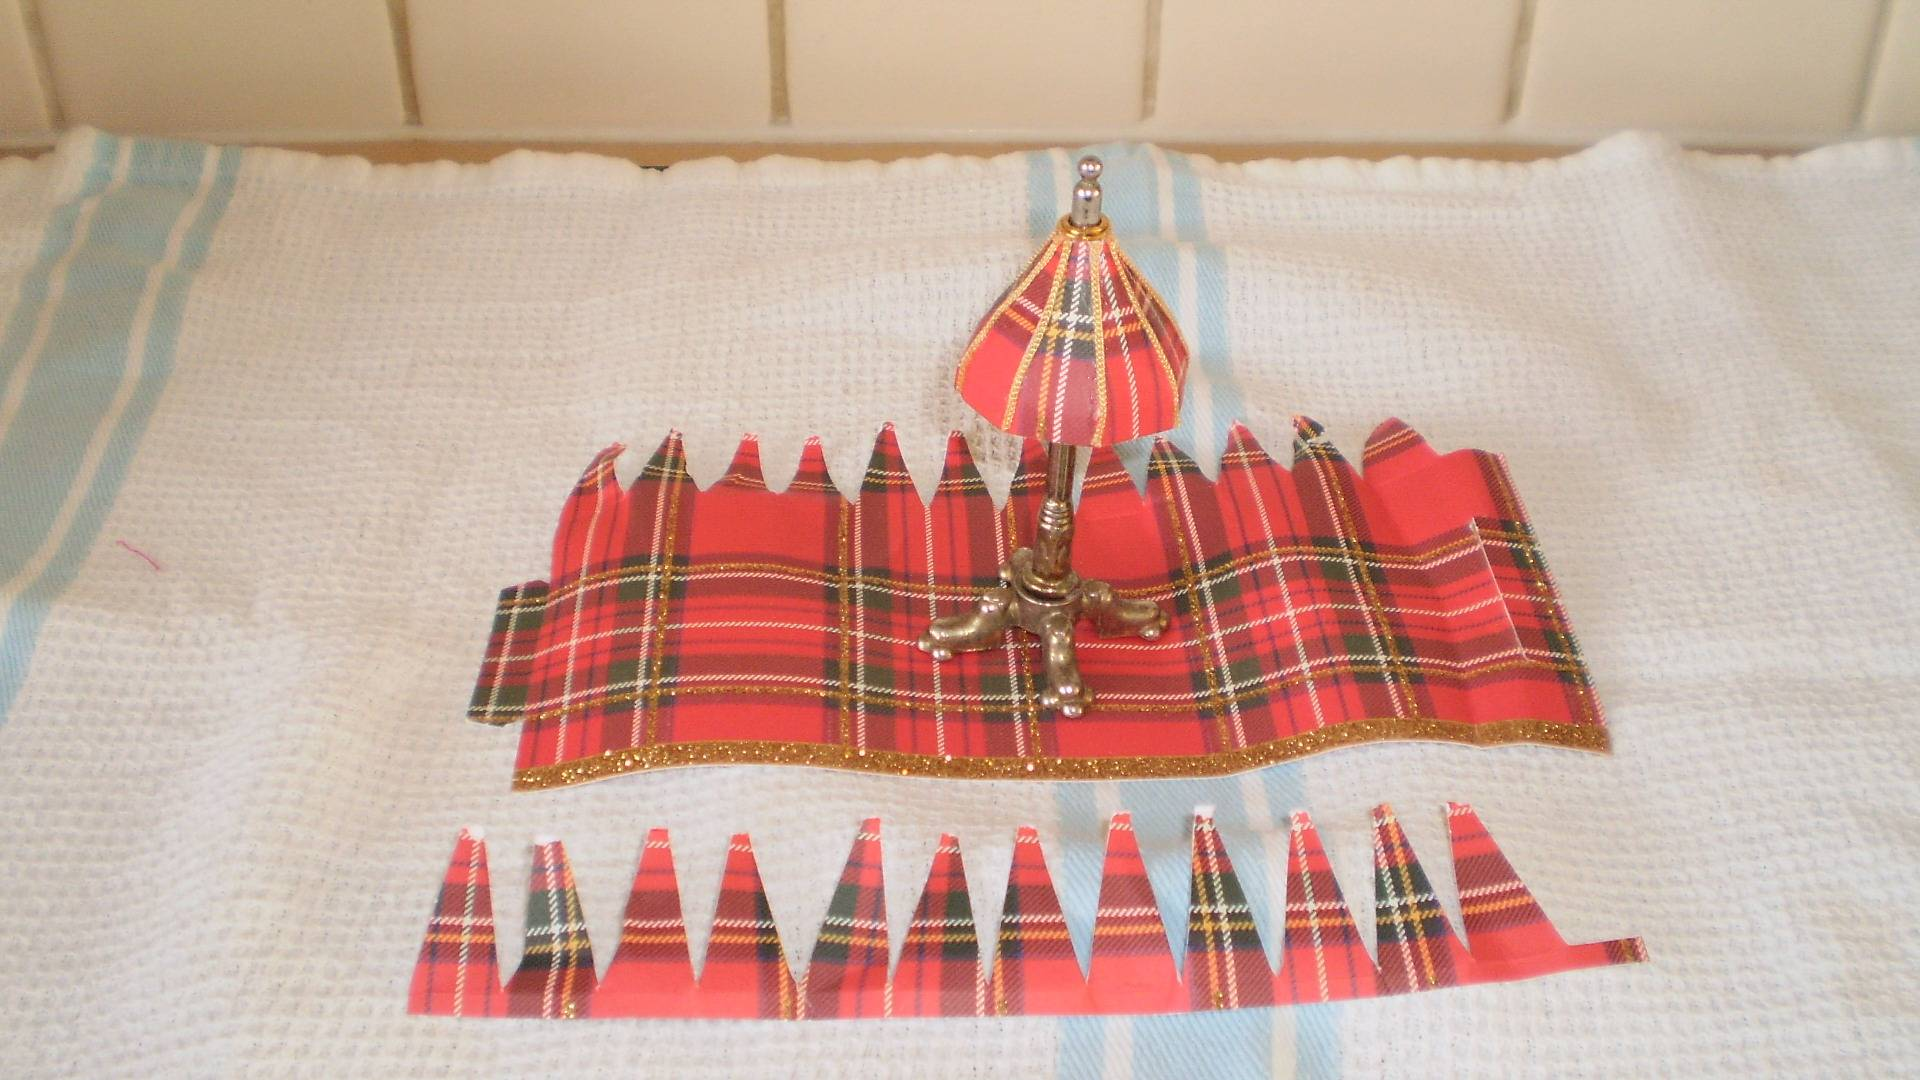 Lampshades from crackers!